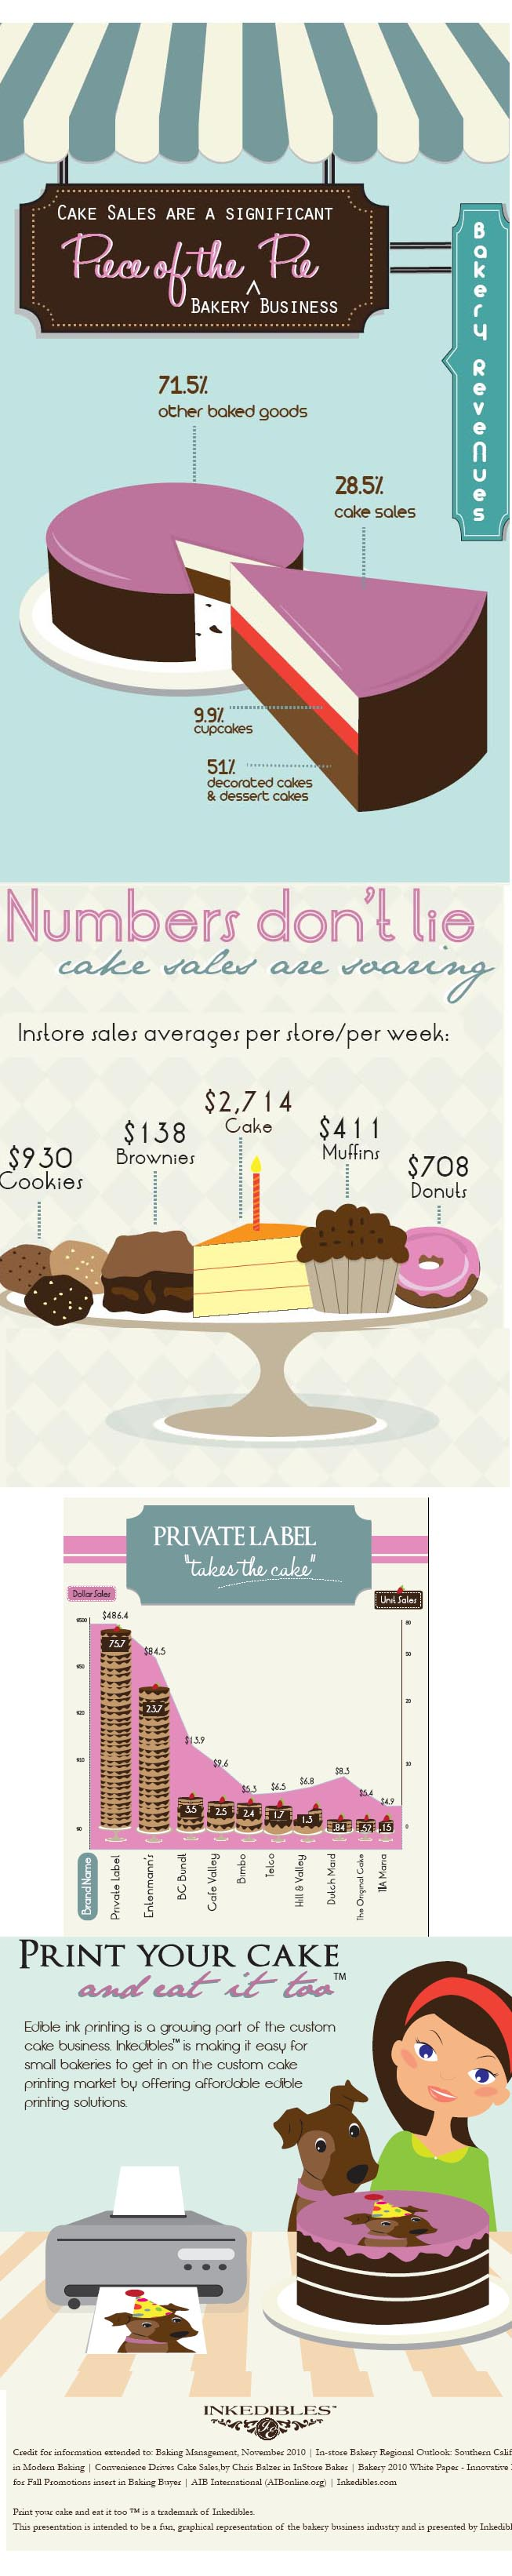 Cake Sales and Industry Statistics